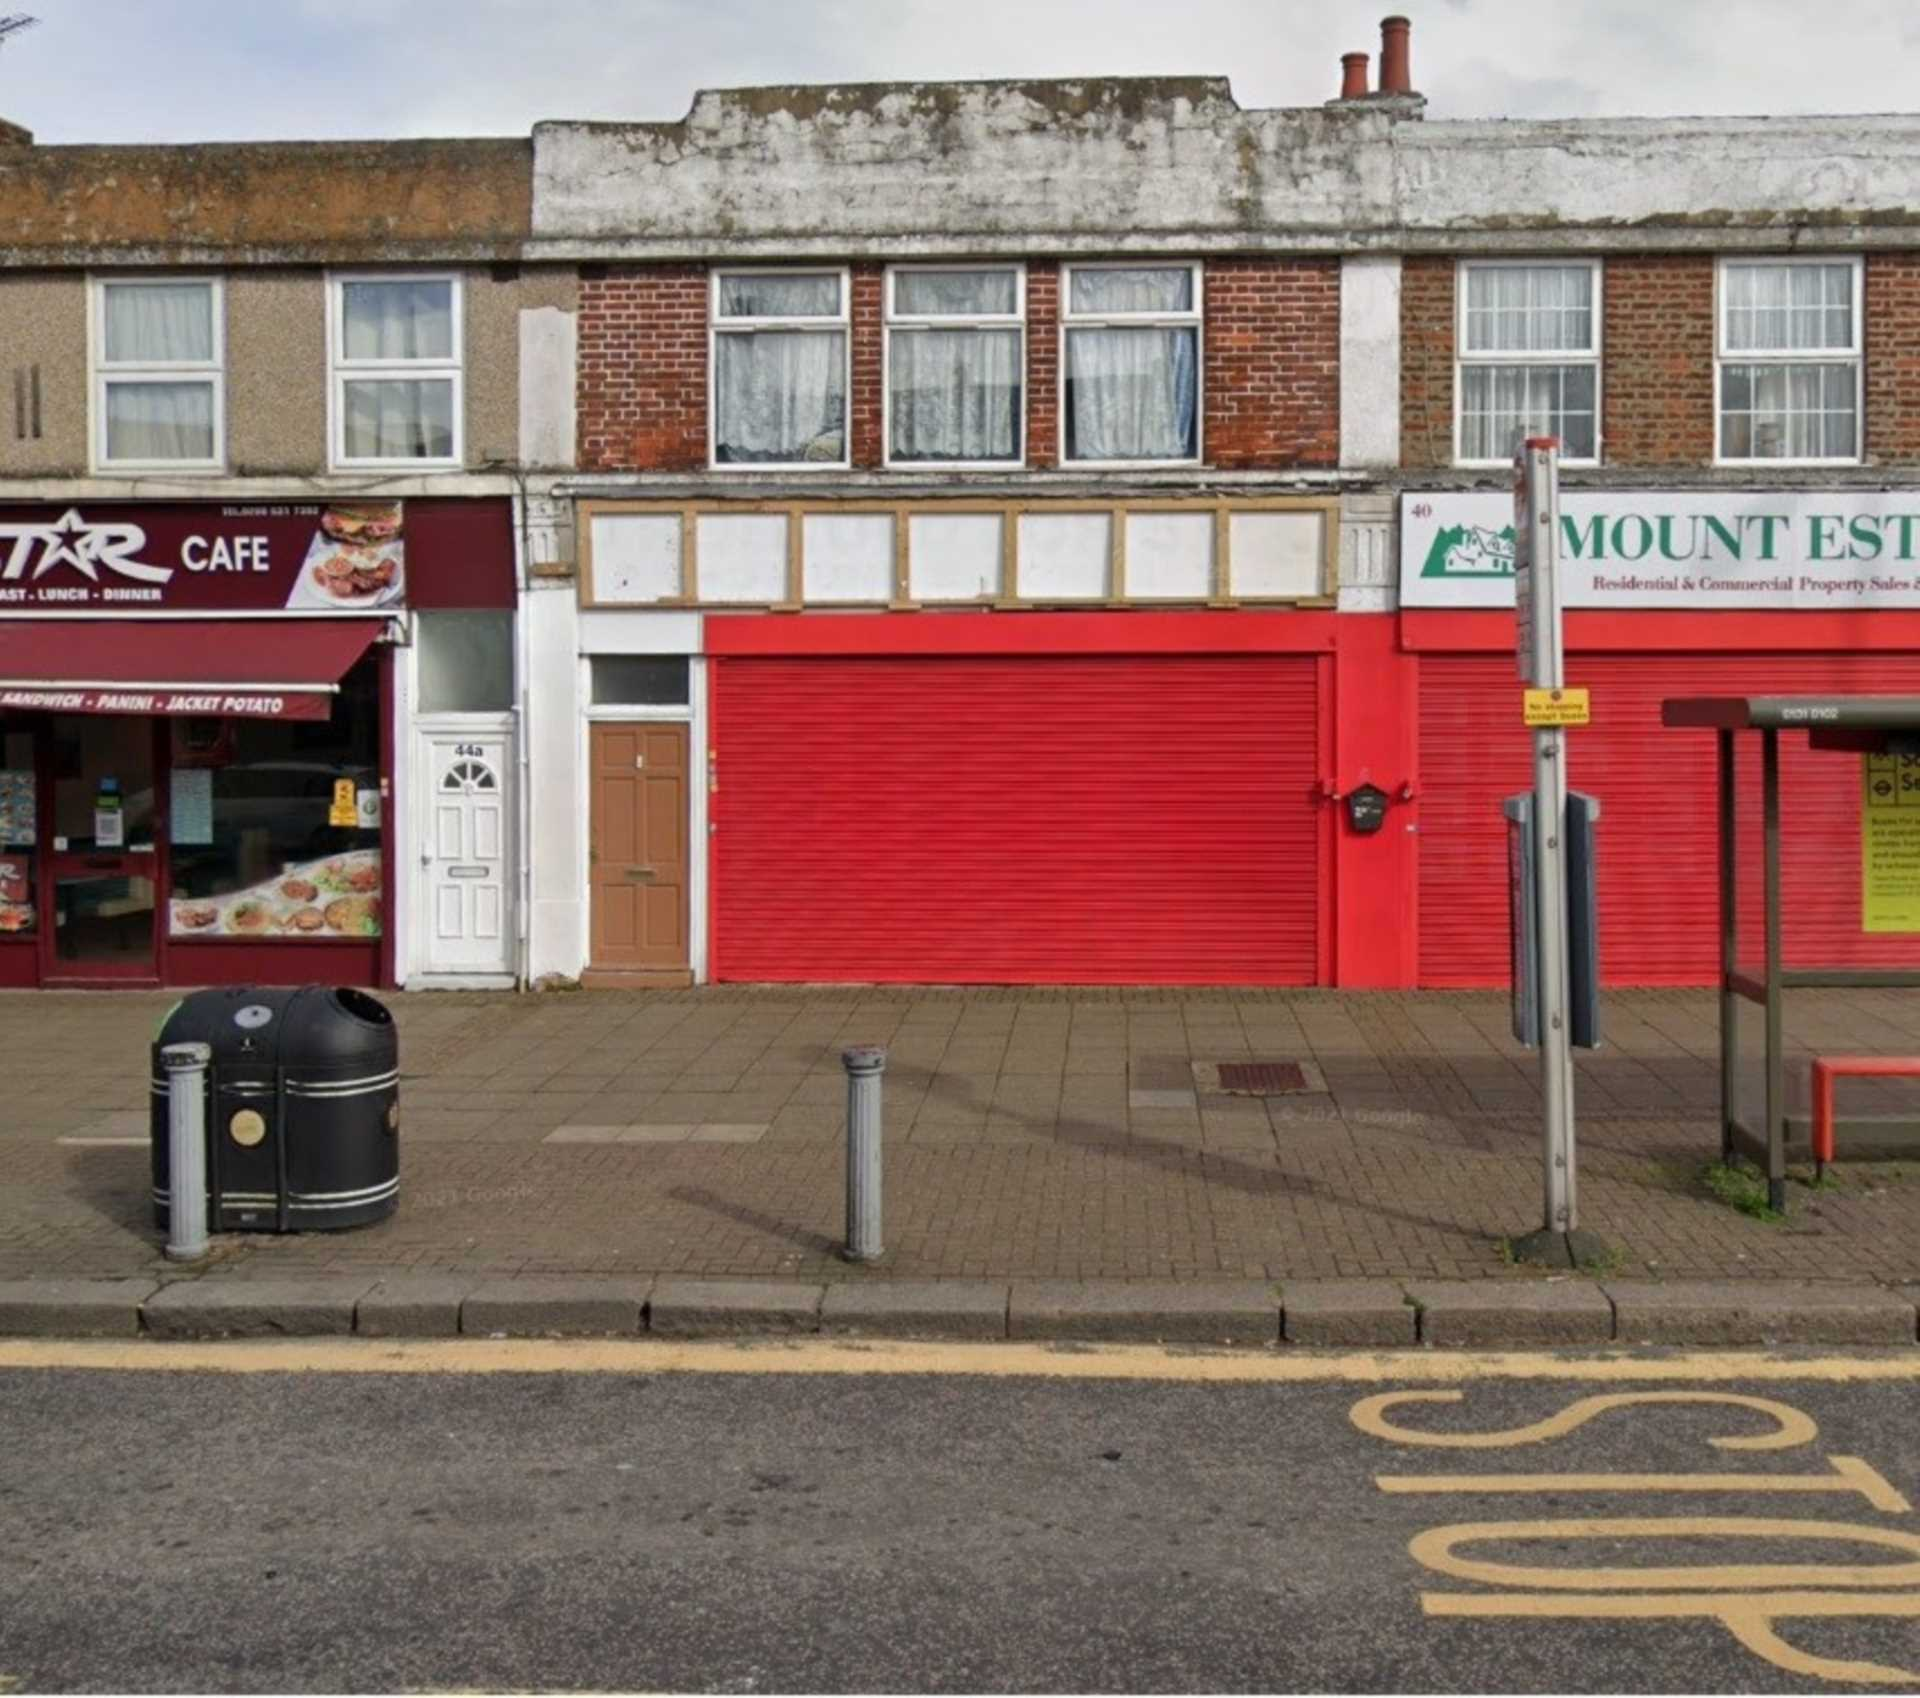 Chingford Mount Road, Chingford, E4, Image 1